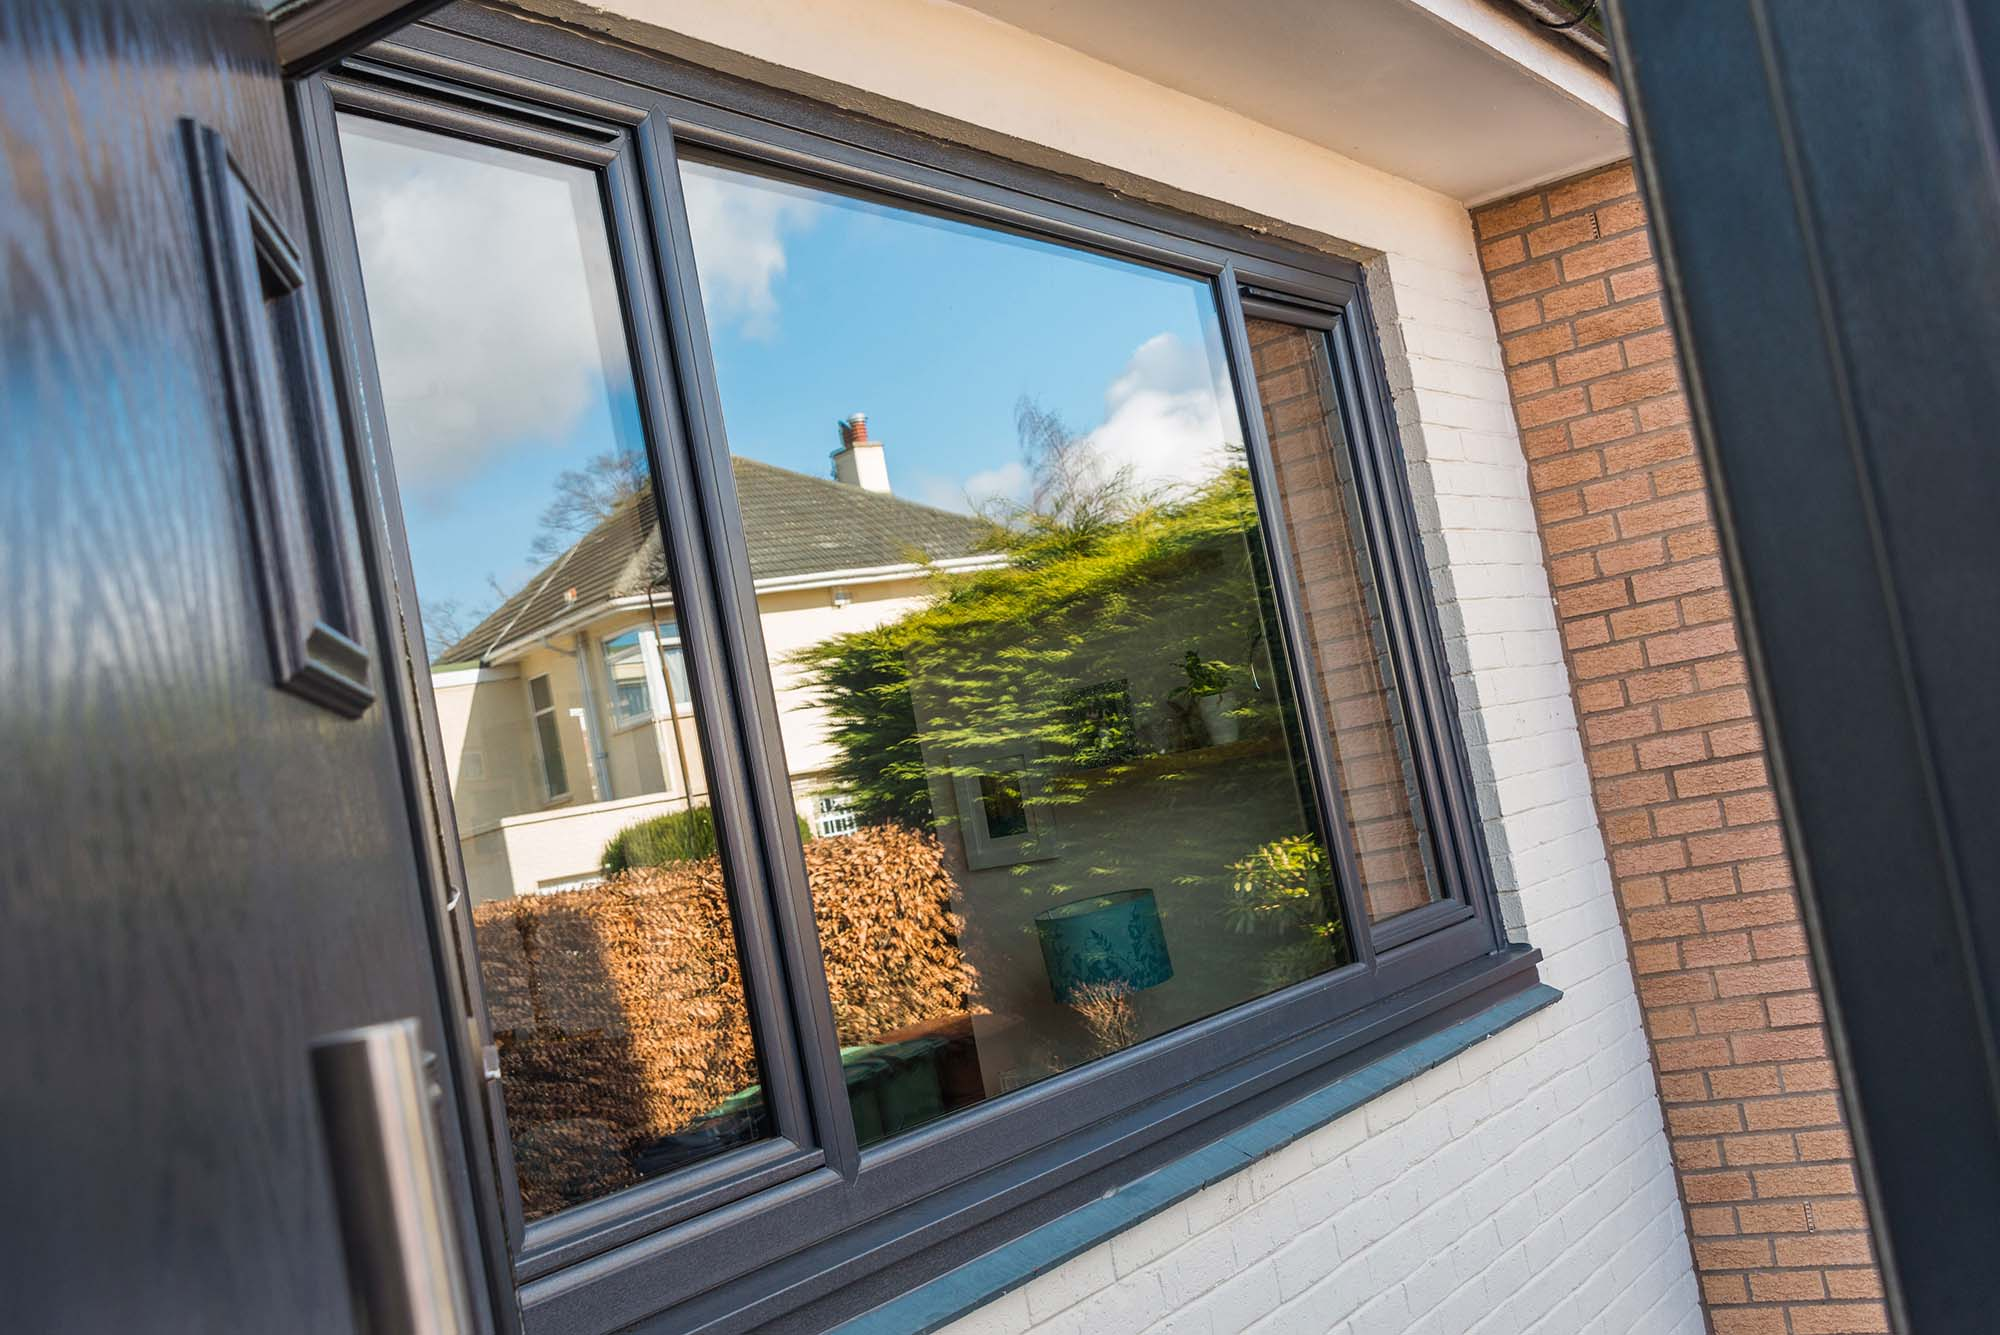 Aluminium Windows install for Homeowners in Stirling